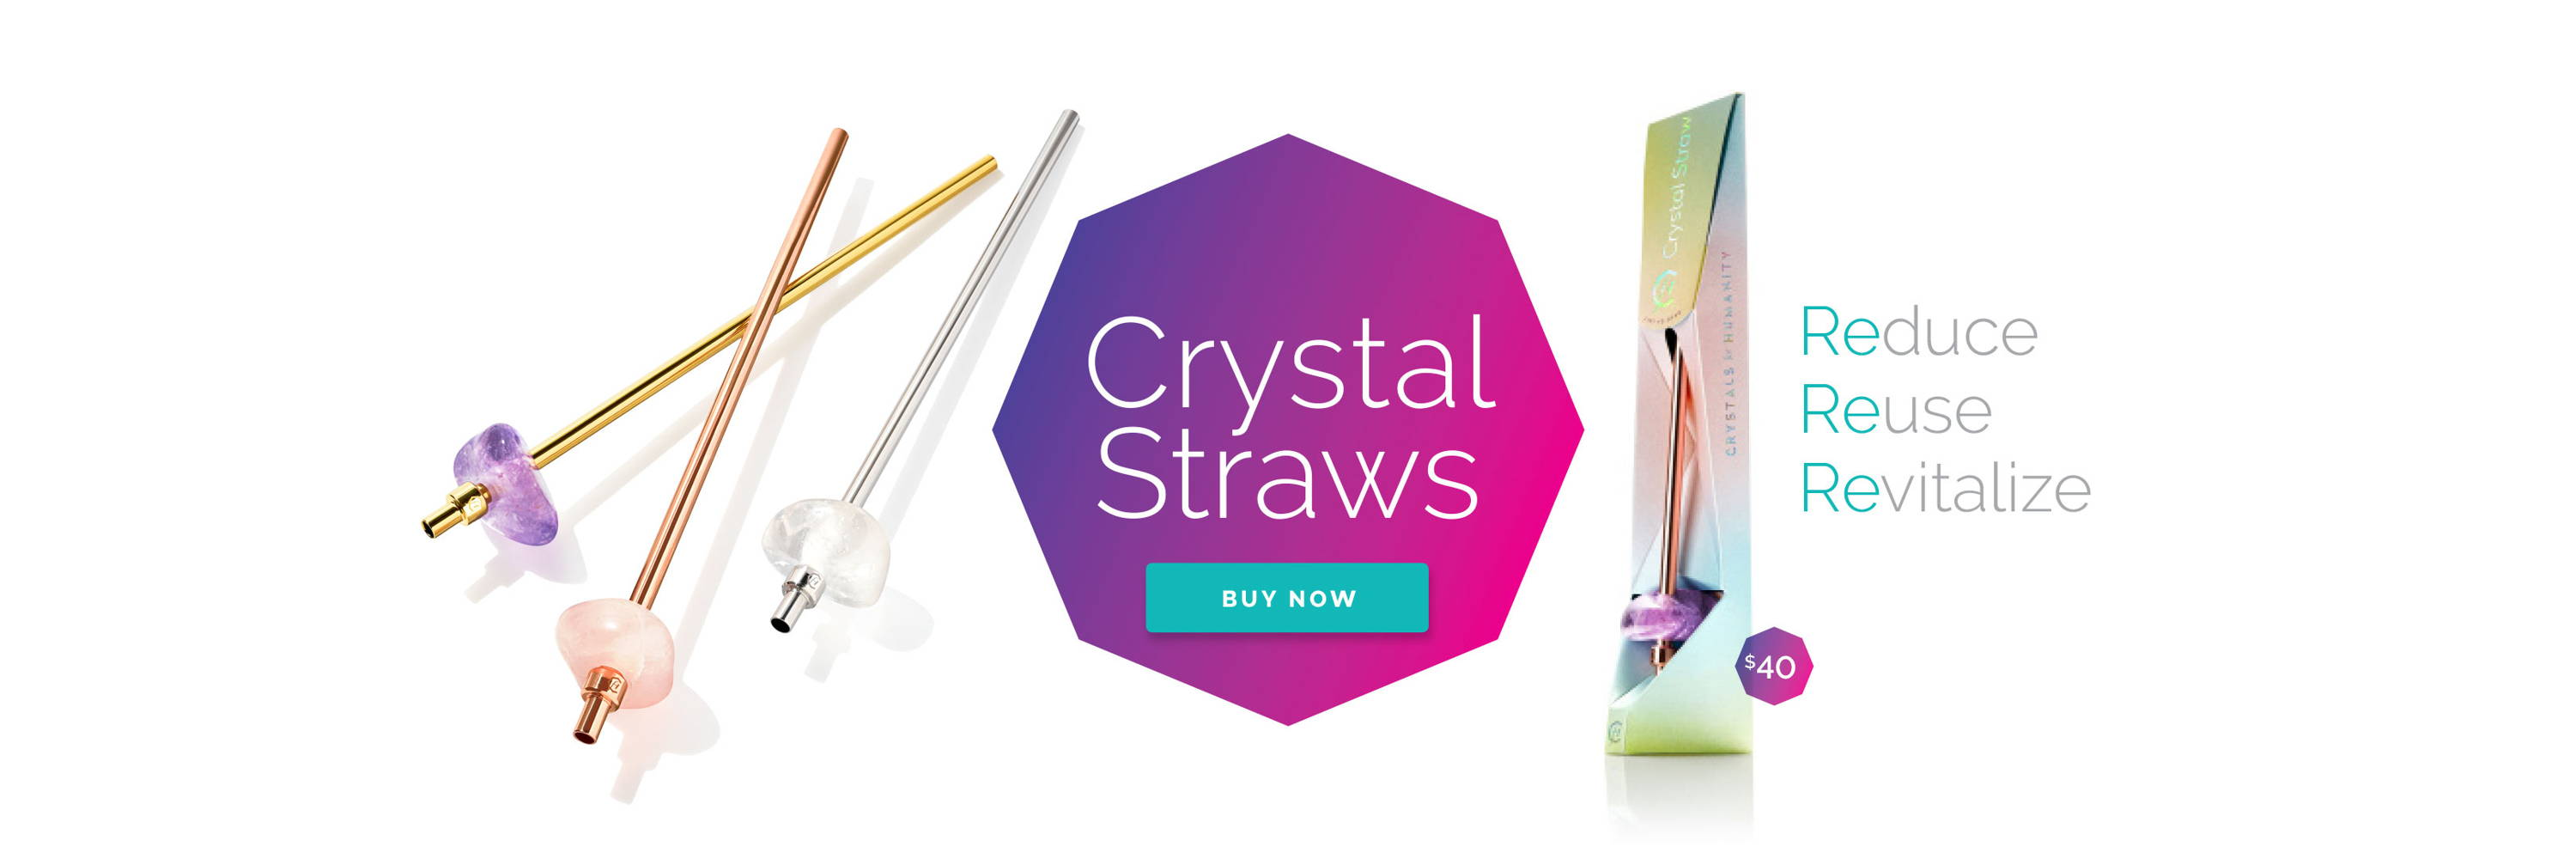 Crystal Straws